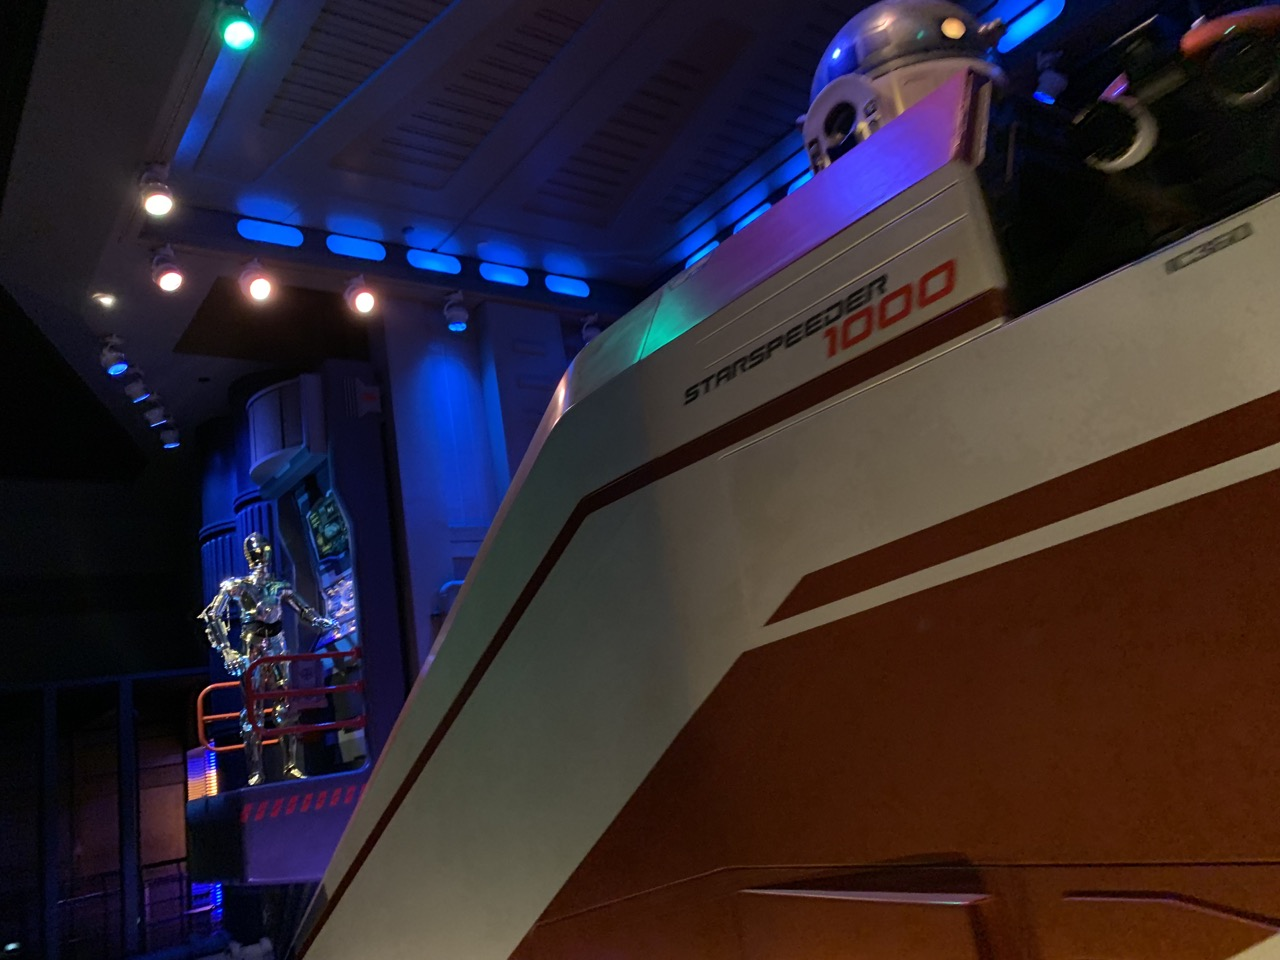 disney world hollywood studios rides and shows star tours.jpeg